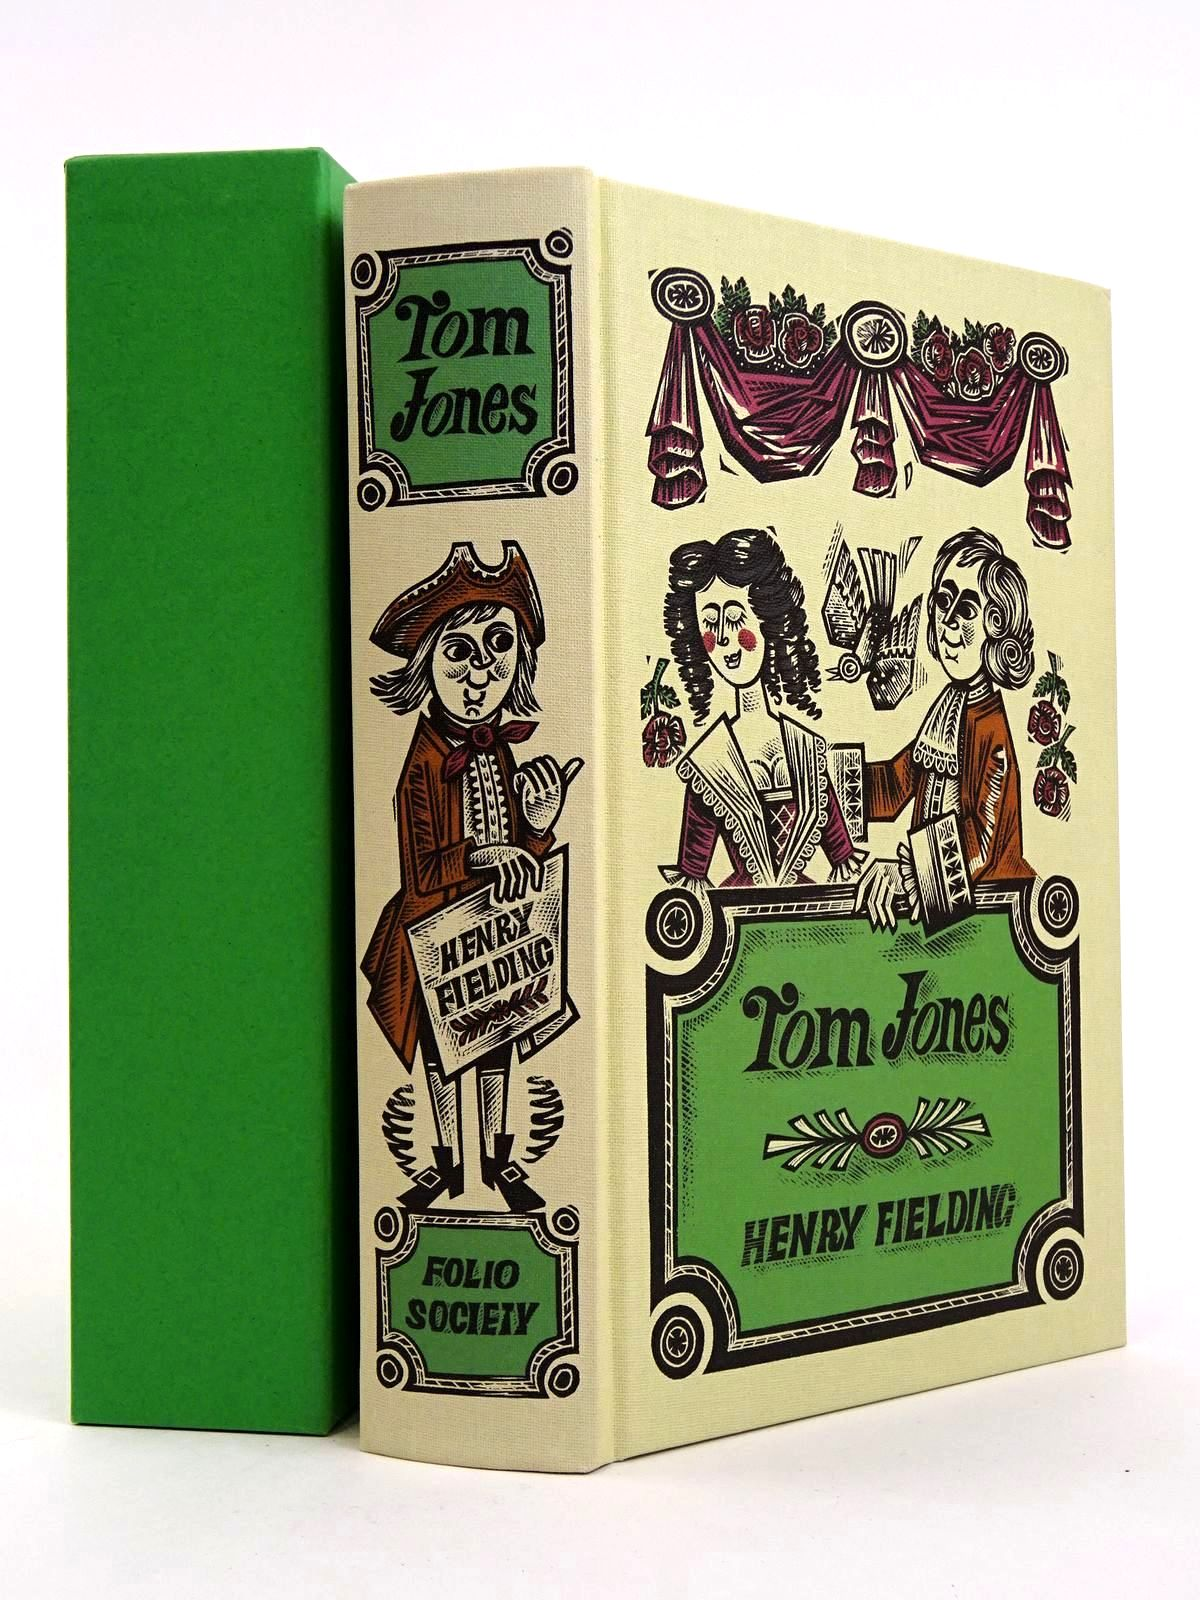 Photo of THE HISTORY OF TOM JONES written by Fielding, Henry illustrated by Harris, Derrick published by Folio Society (STOCK CODE: 1818204)  for sale by Stella & Rose's Books